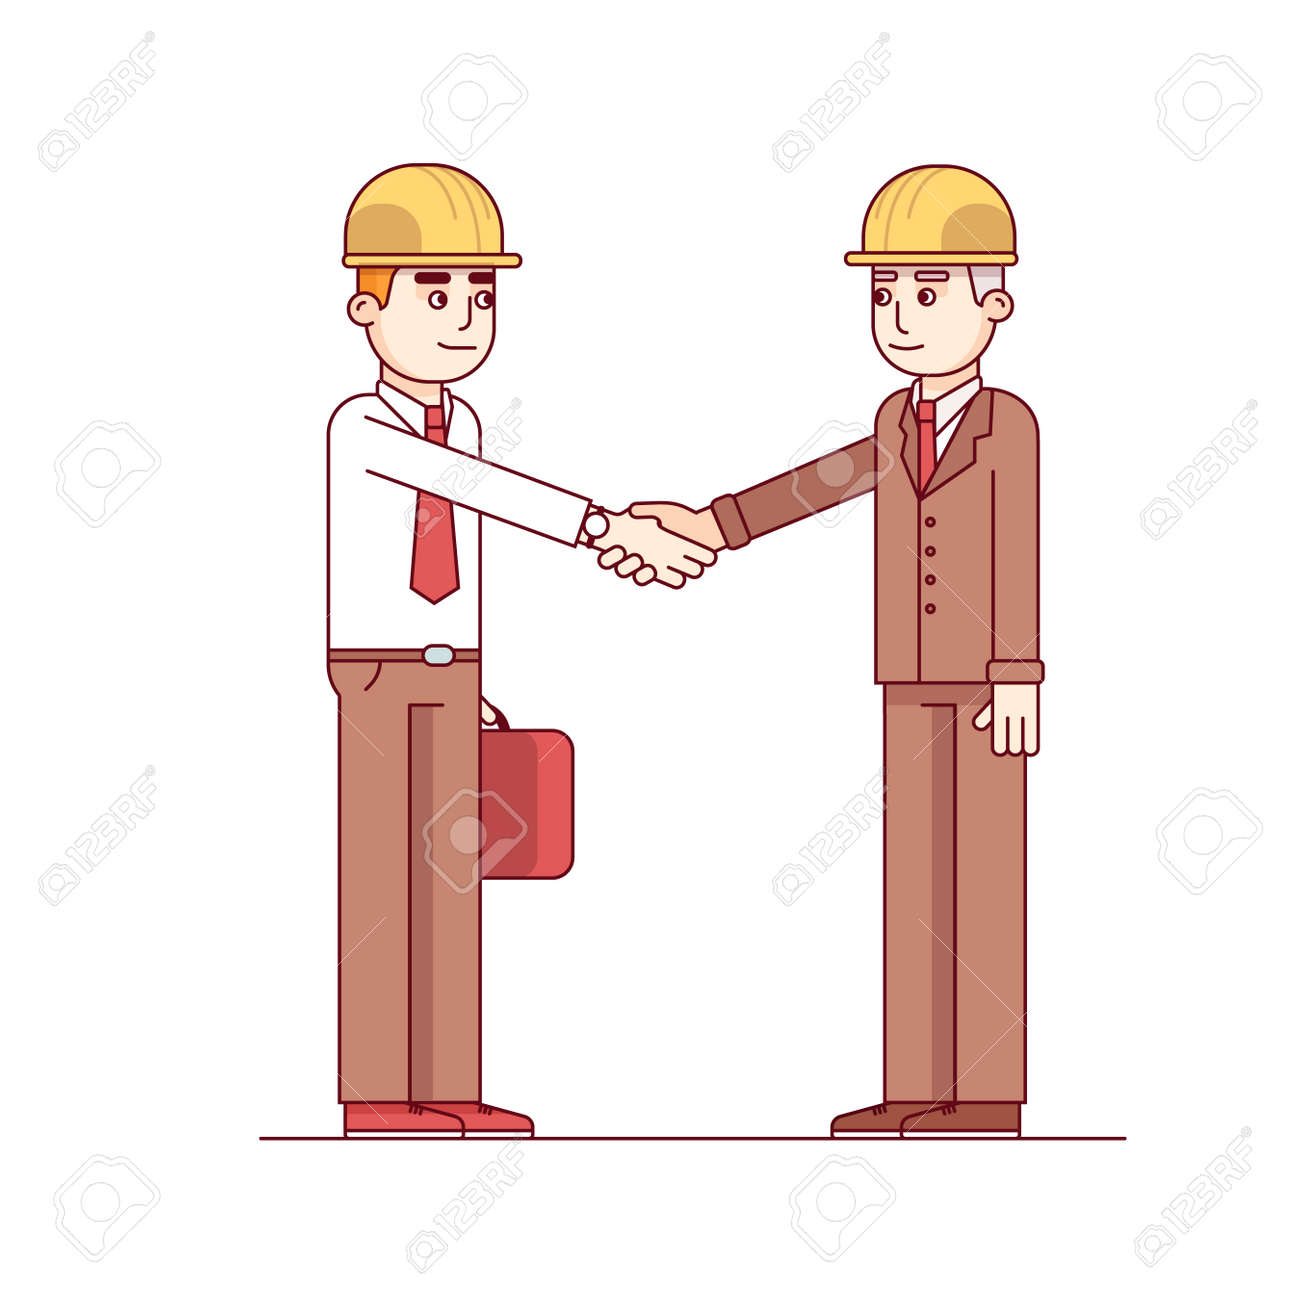 Two Architects Or Building Engineers Shaking Hands In Agreement